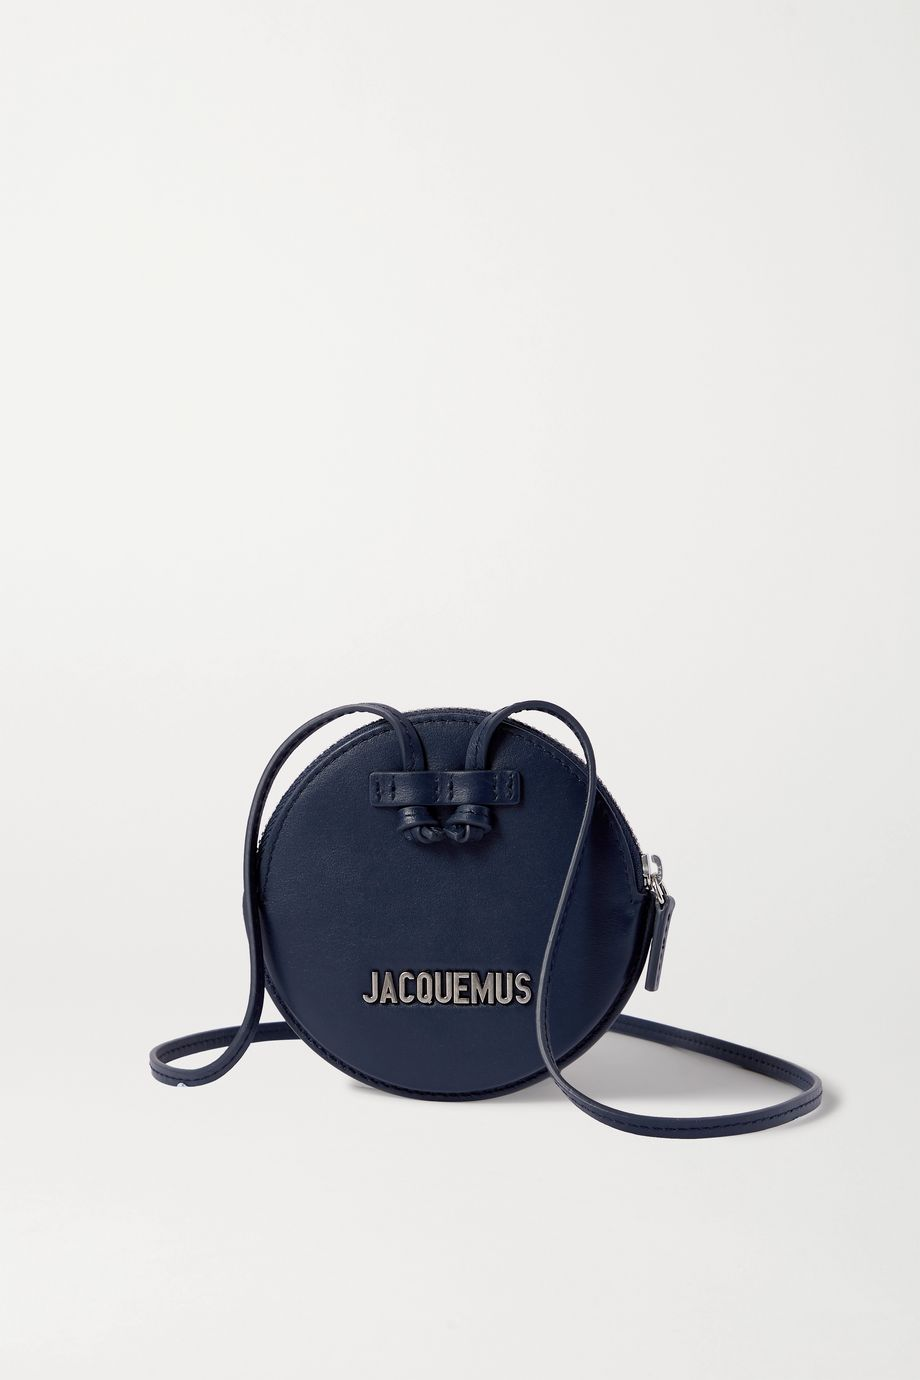 Jacquemus Le Pitchou mini textured-leather pouch